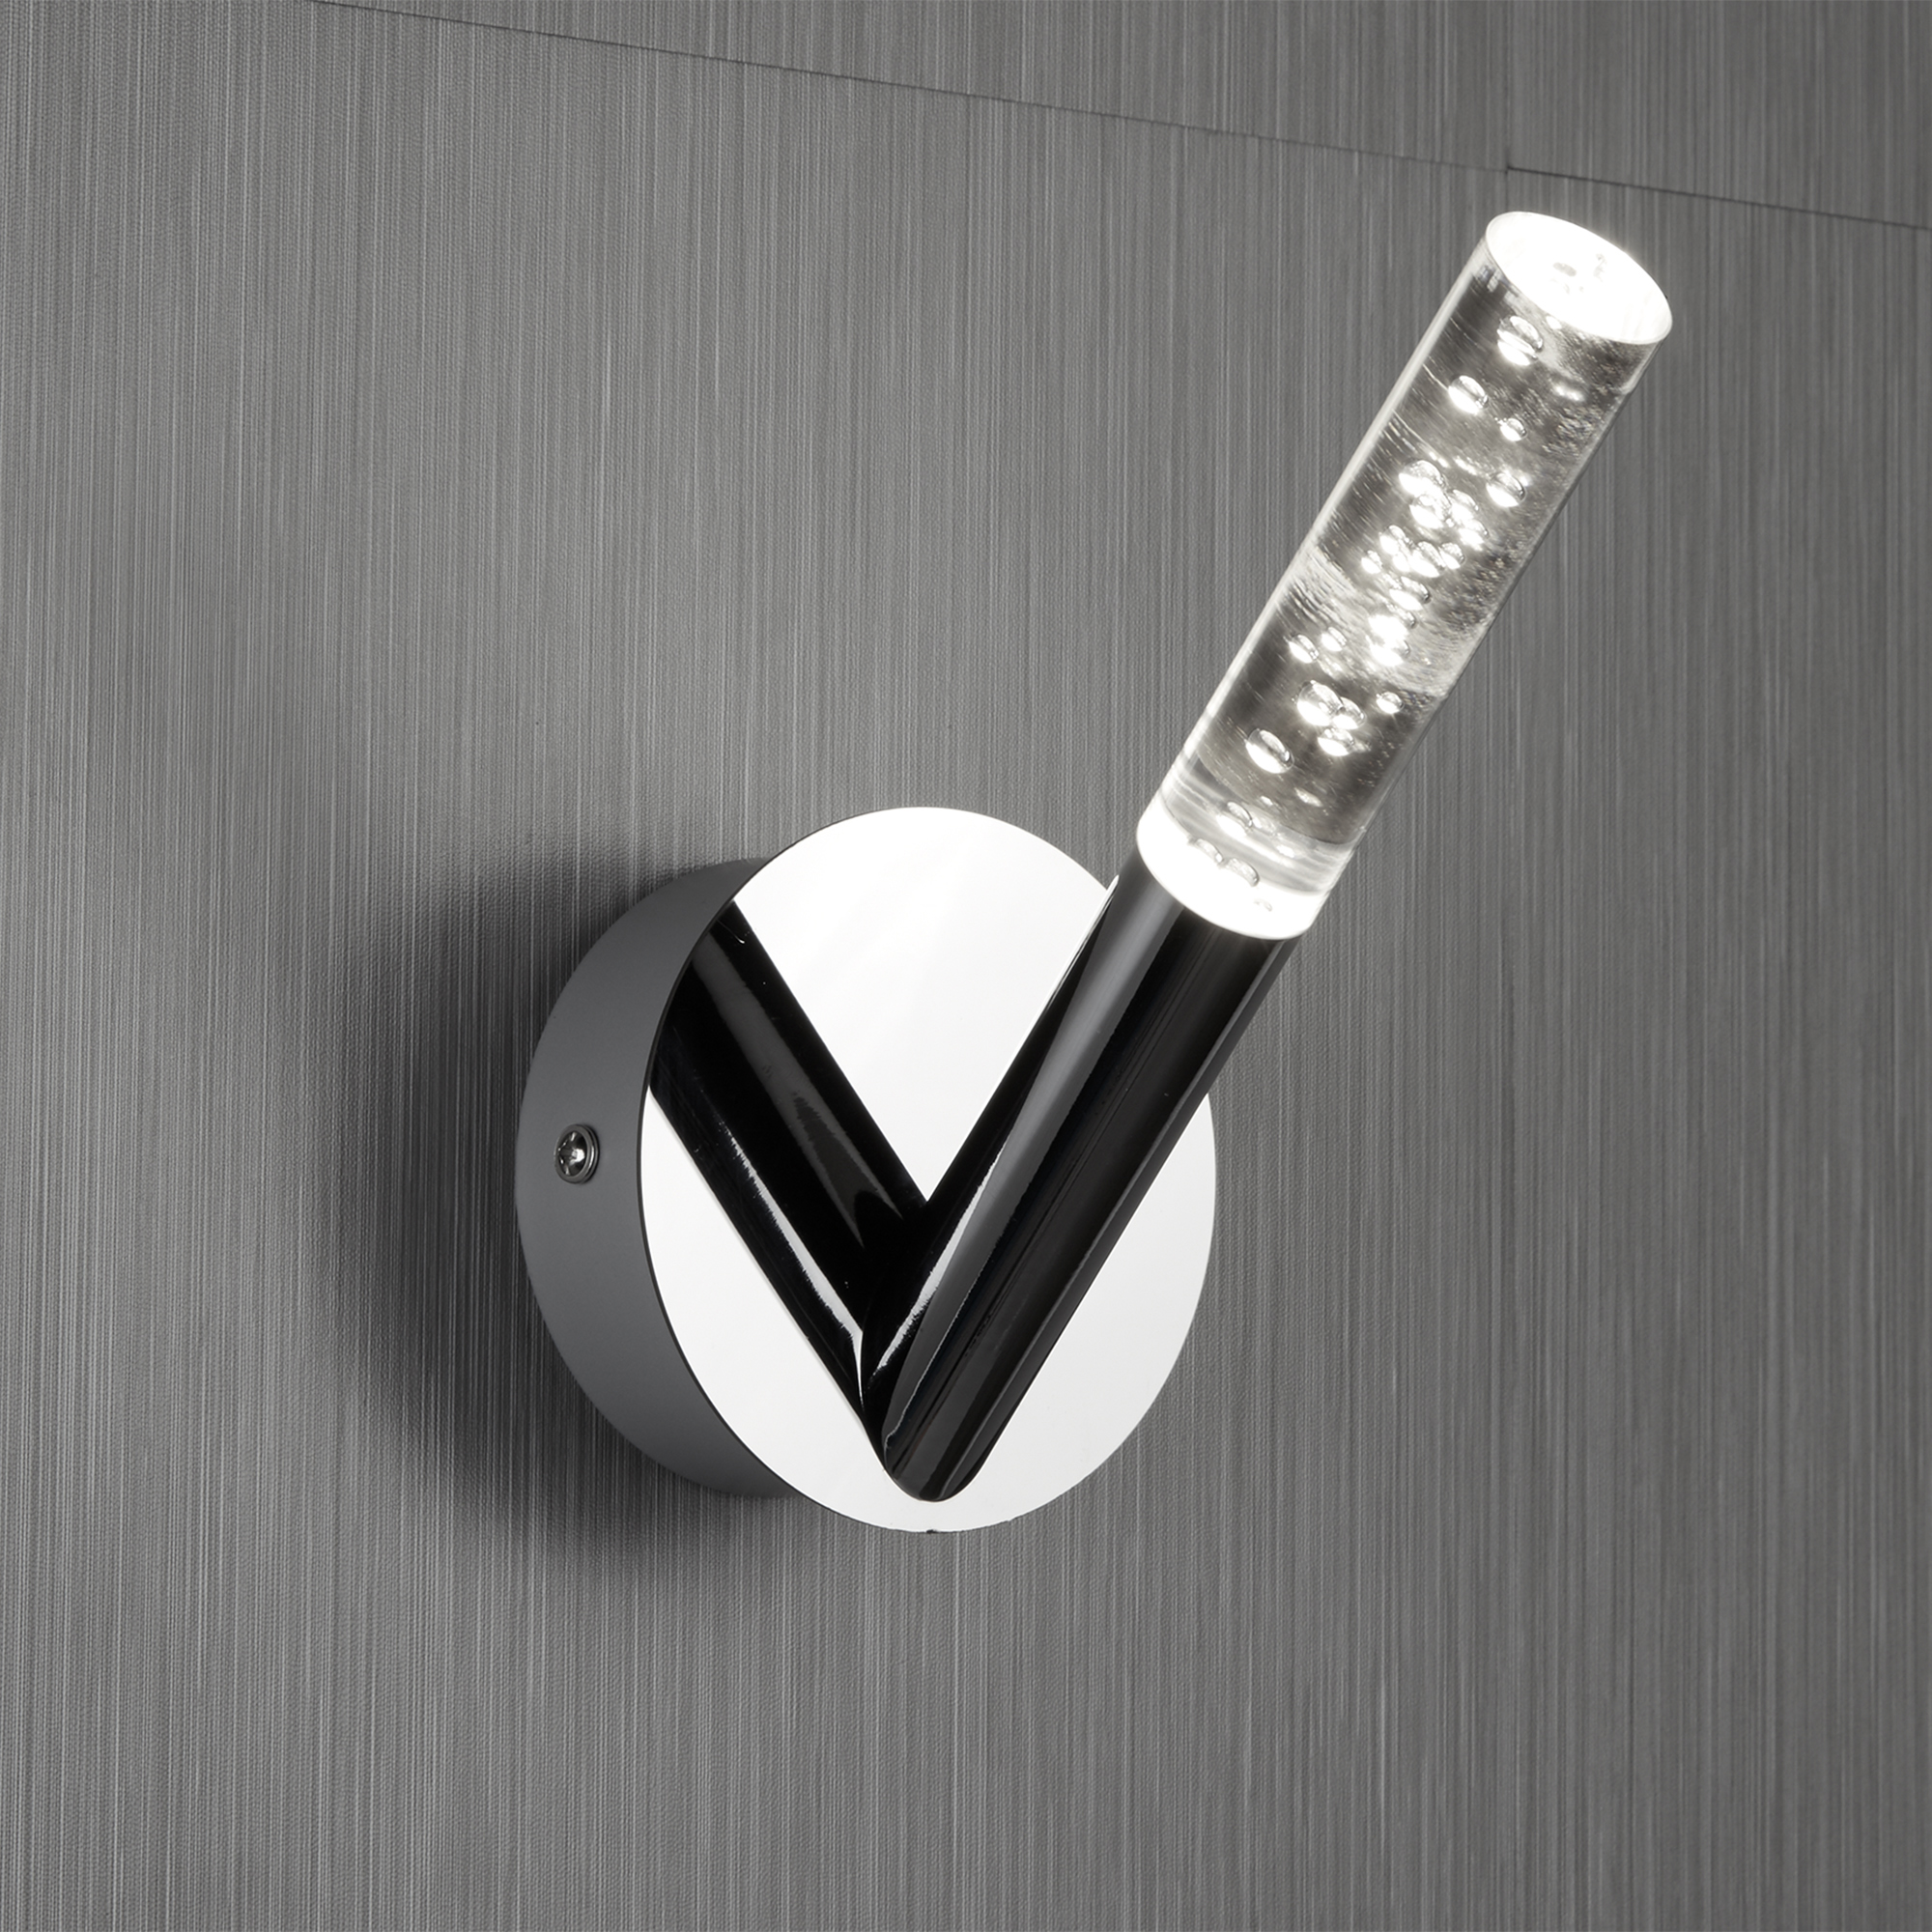 Tnl 1 Light Bathroom Wall Bracket Bubbled Acrylic Chrome Rods The Northey Lights